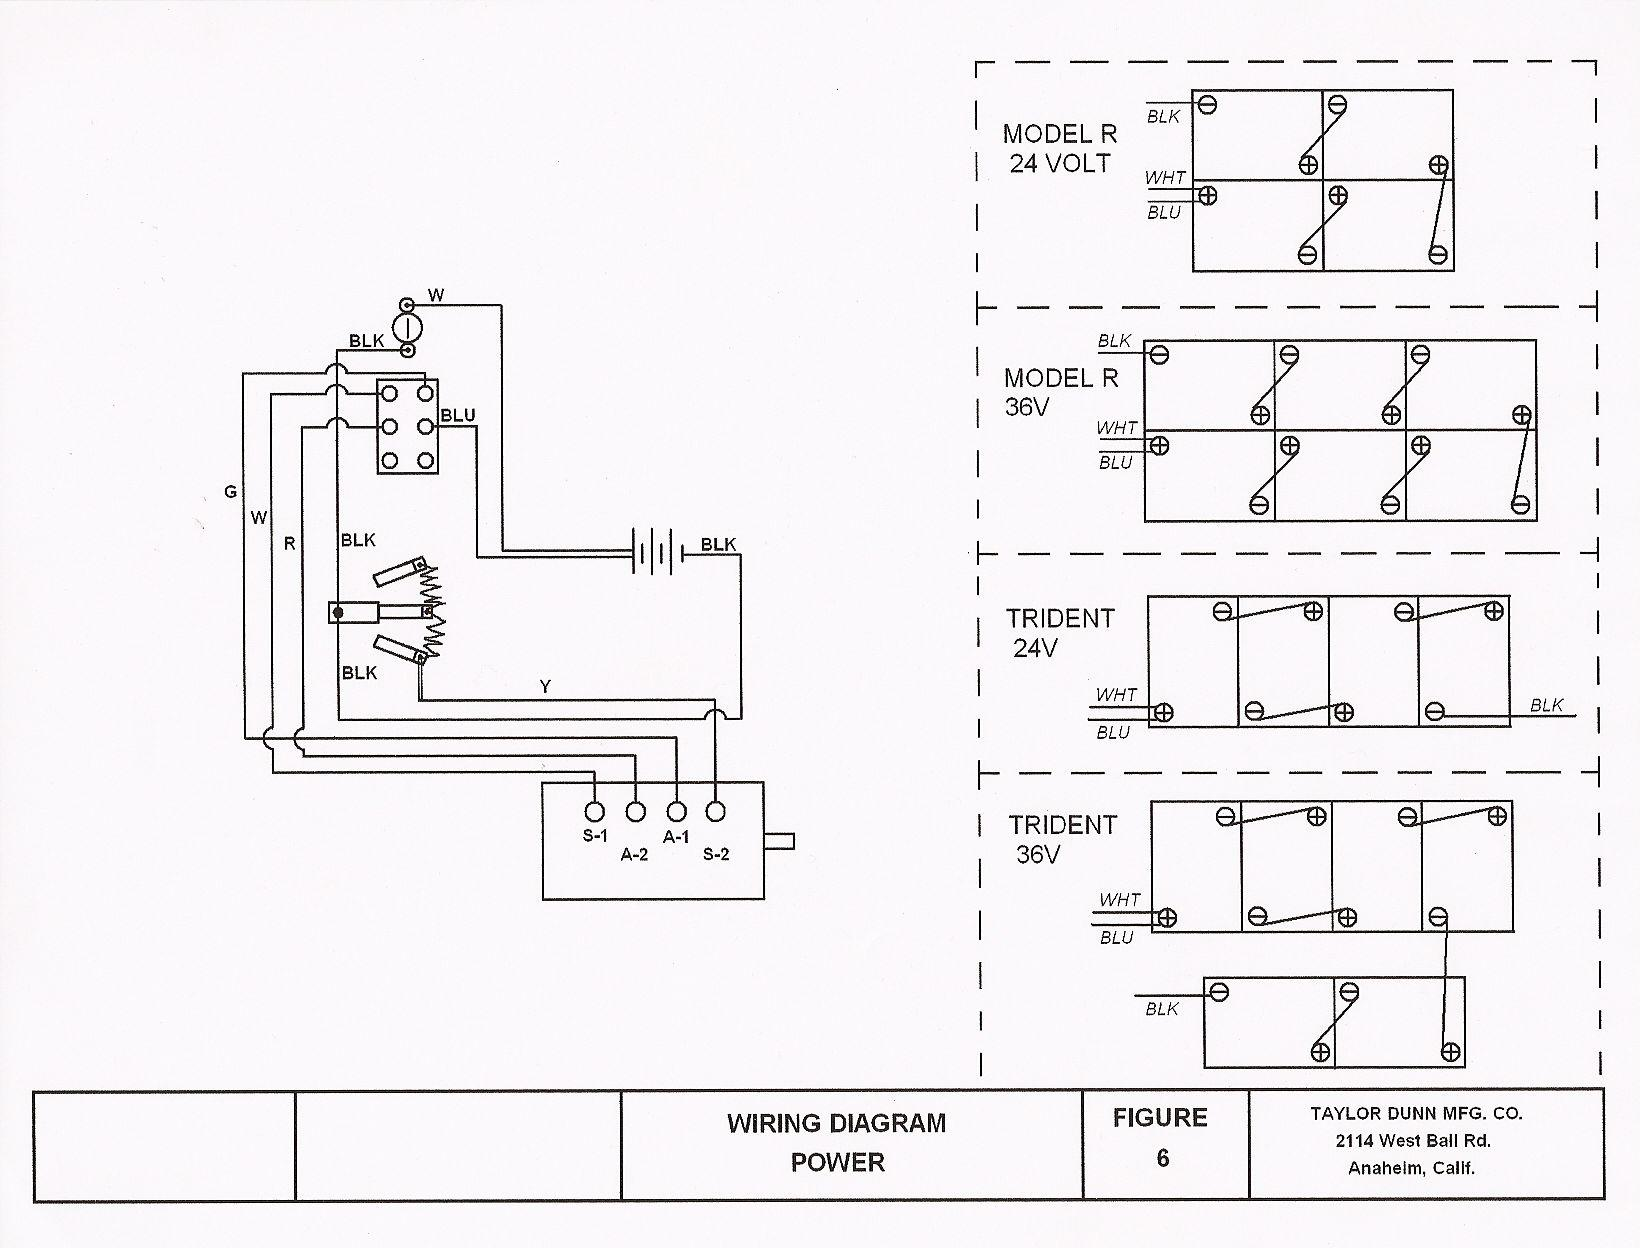 trident02 taylor dunn wiring diagram wiring diagram and schematic design trident gas control panel wiring diagram at aneh.co